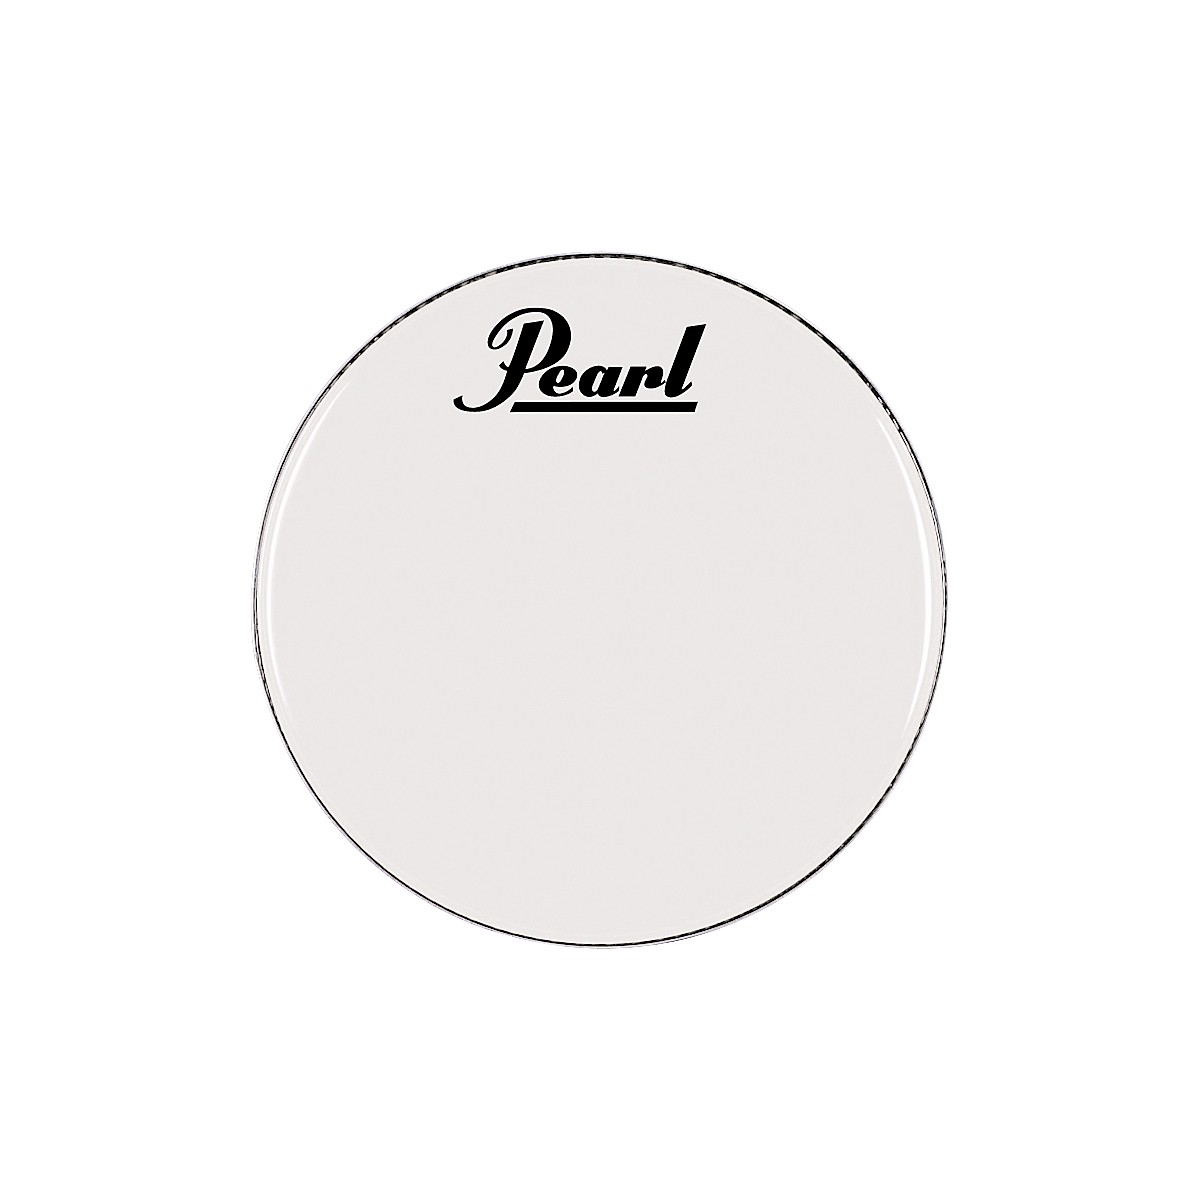 Pearl Logo Marching Bass Drum Heads